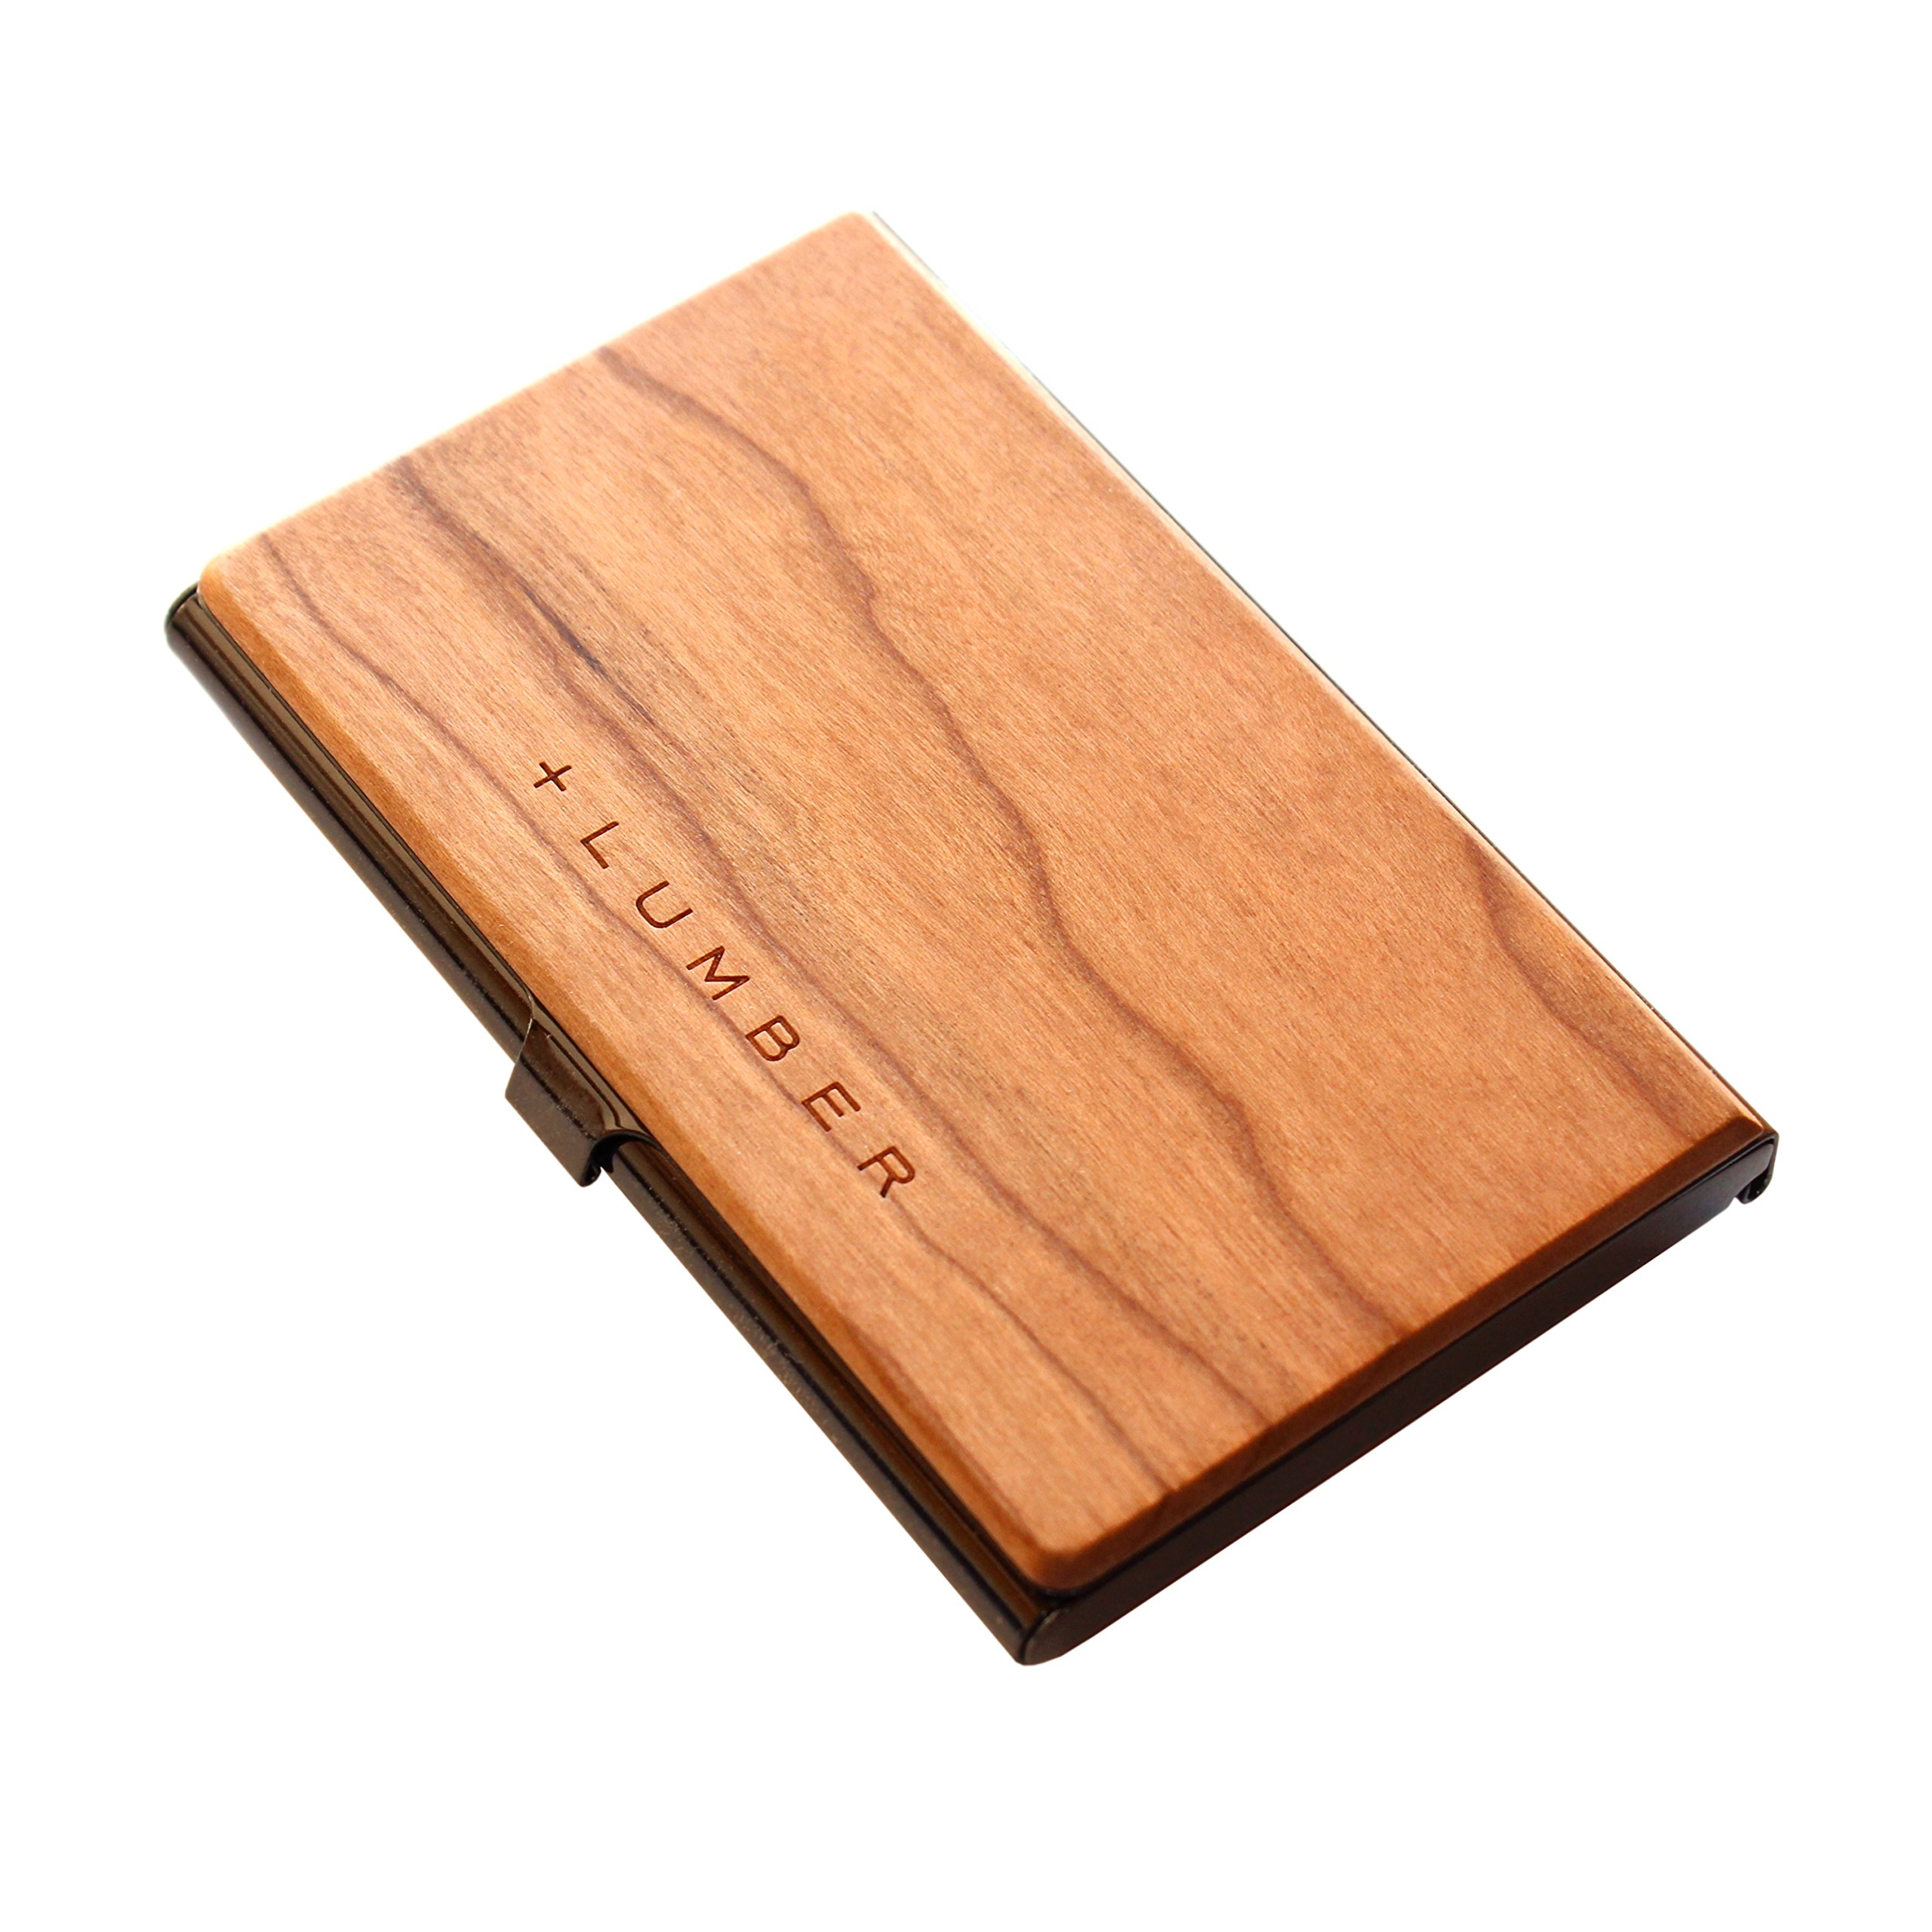 +LUMBER by Hacoa PL025 CARD CASE, Stainless Case for Business Cards with an Accent of Precious Wood (Cherry)